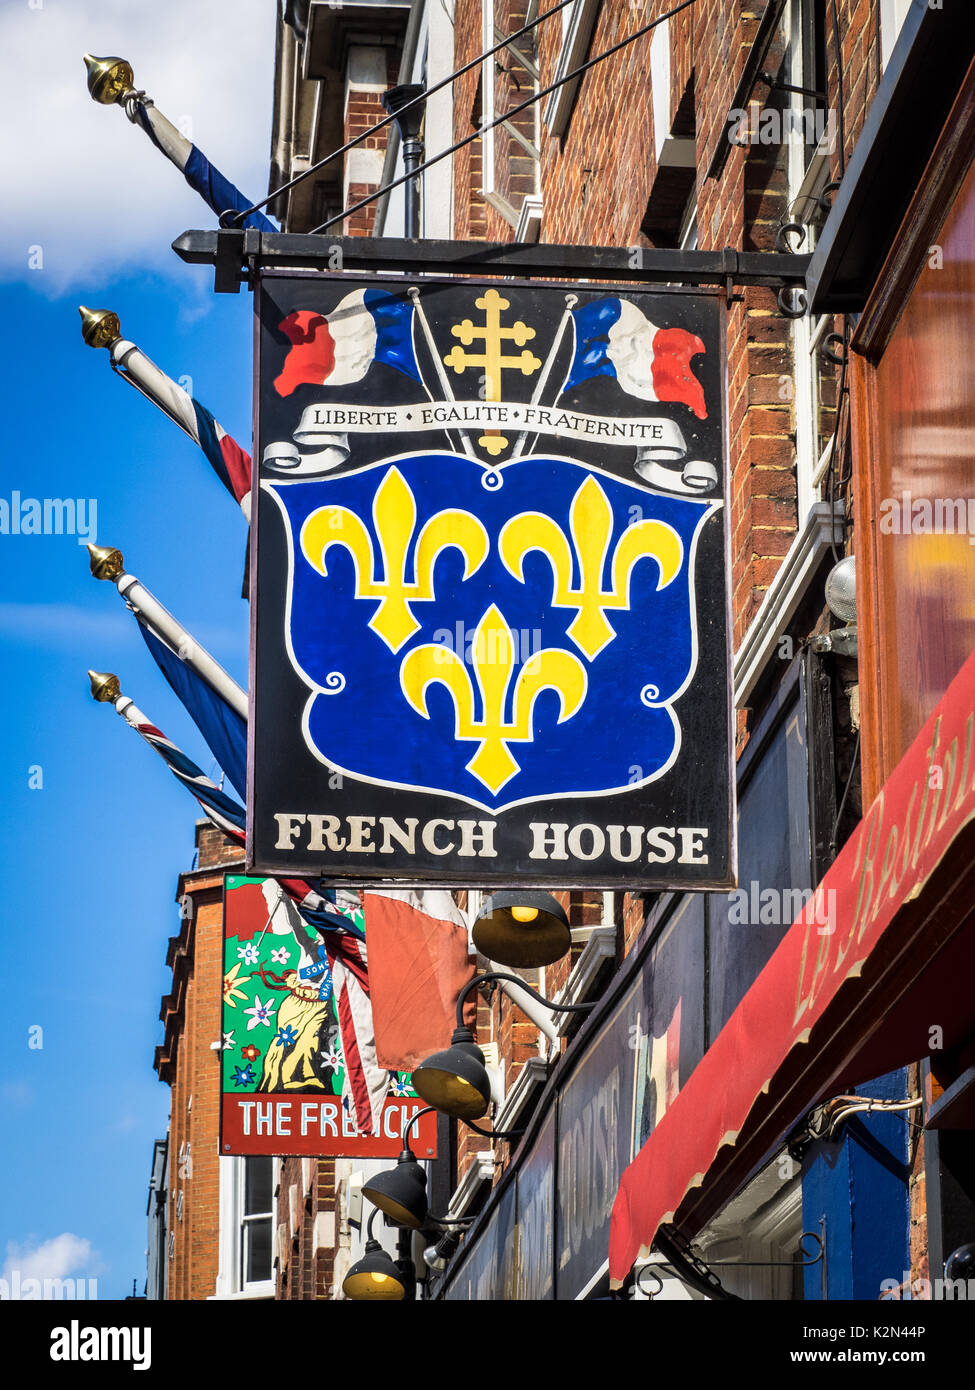 The famous French House, 49 Dean Street, Soho, London, well known as a haunt of artists and writers. - Stock Image